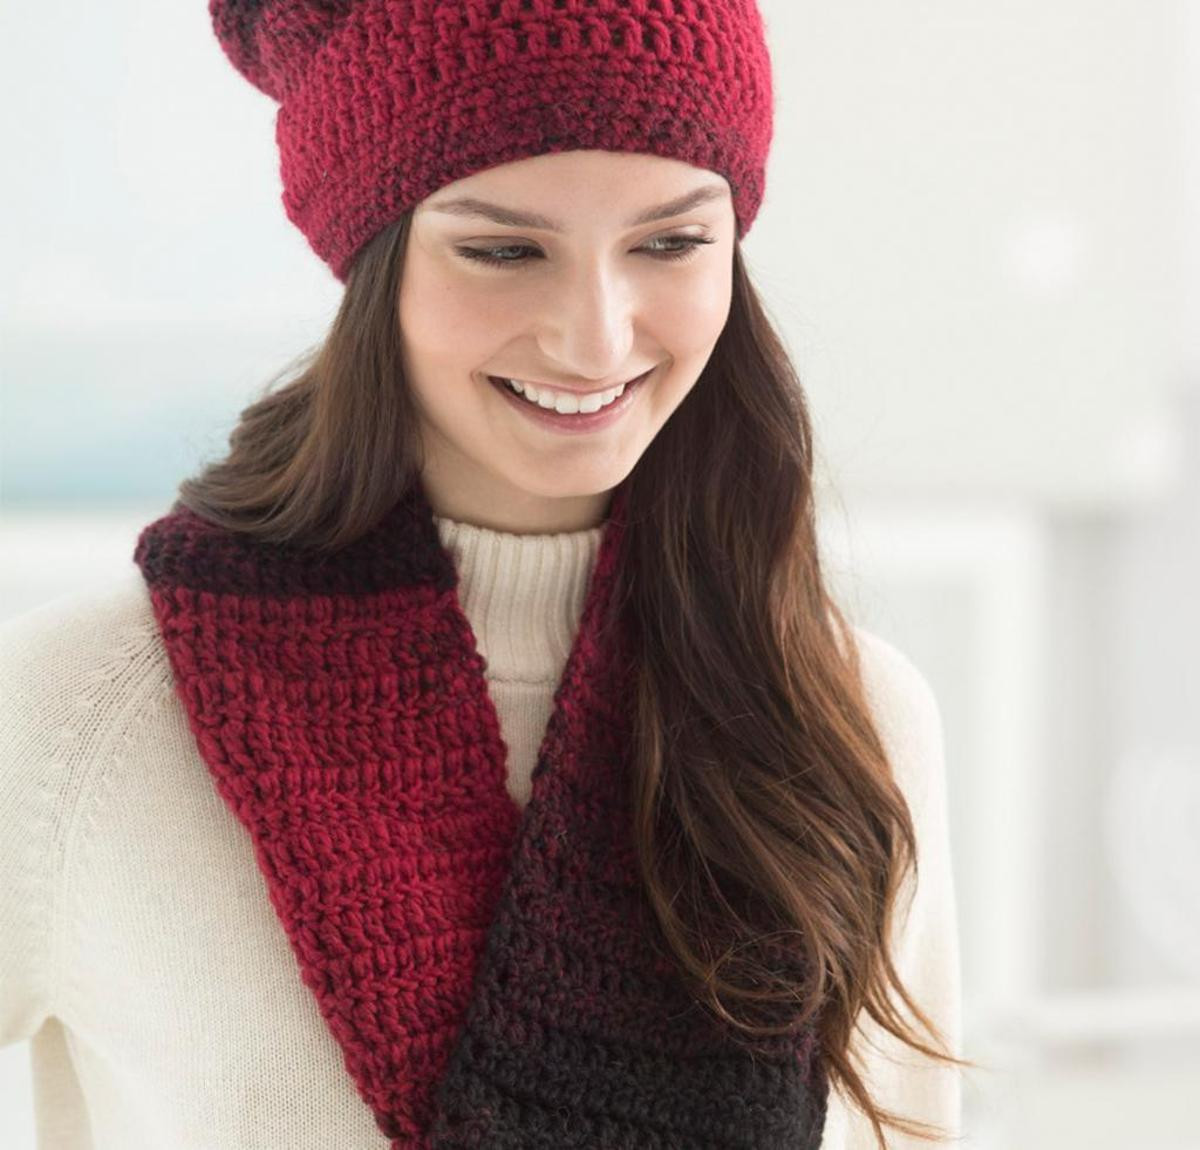 Effortless Hat and Cowl Crochet Kit